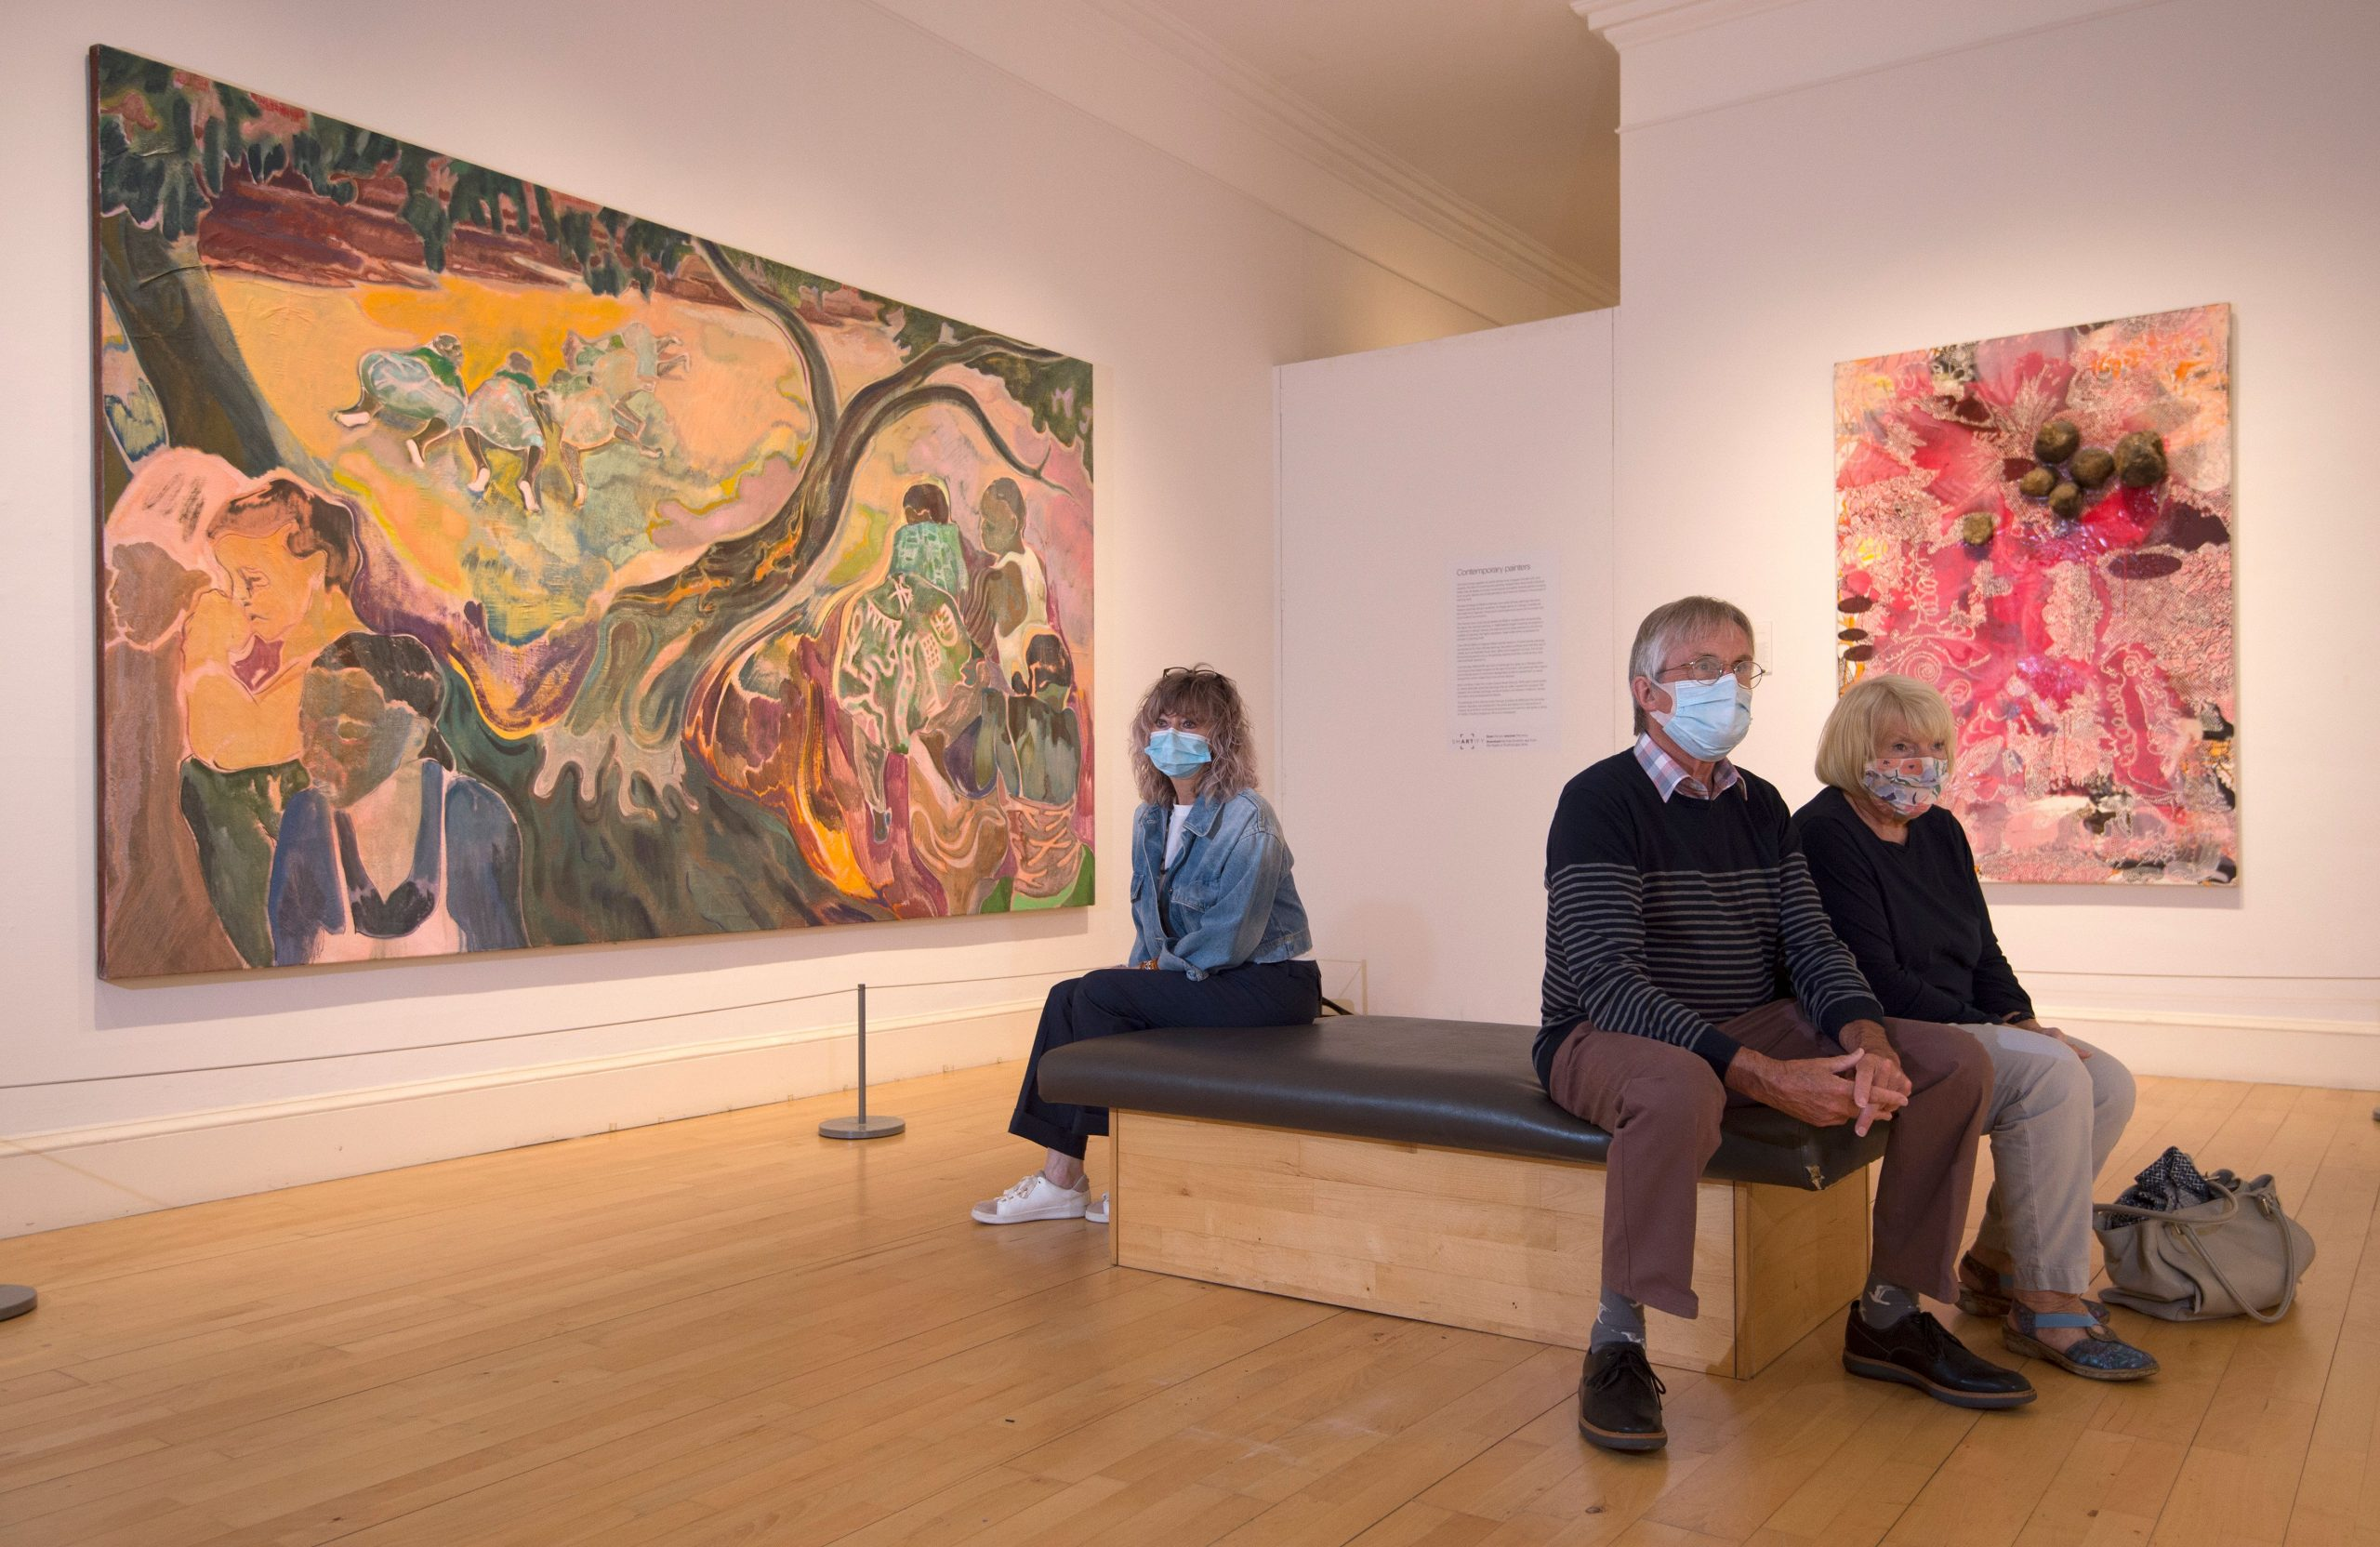 Visitors wearing masks at the National Gallery of Scotland